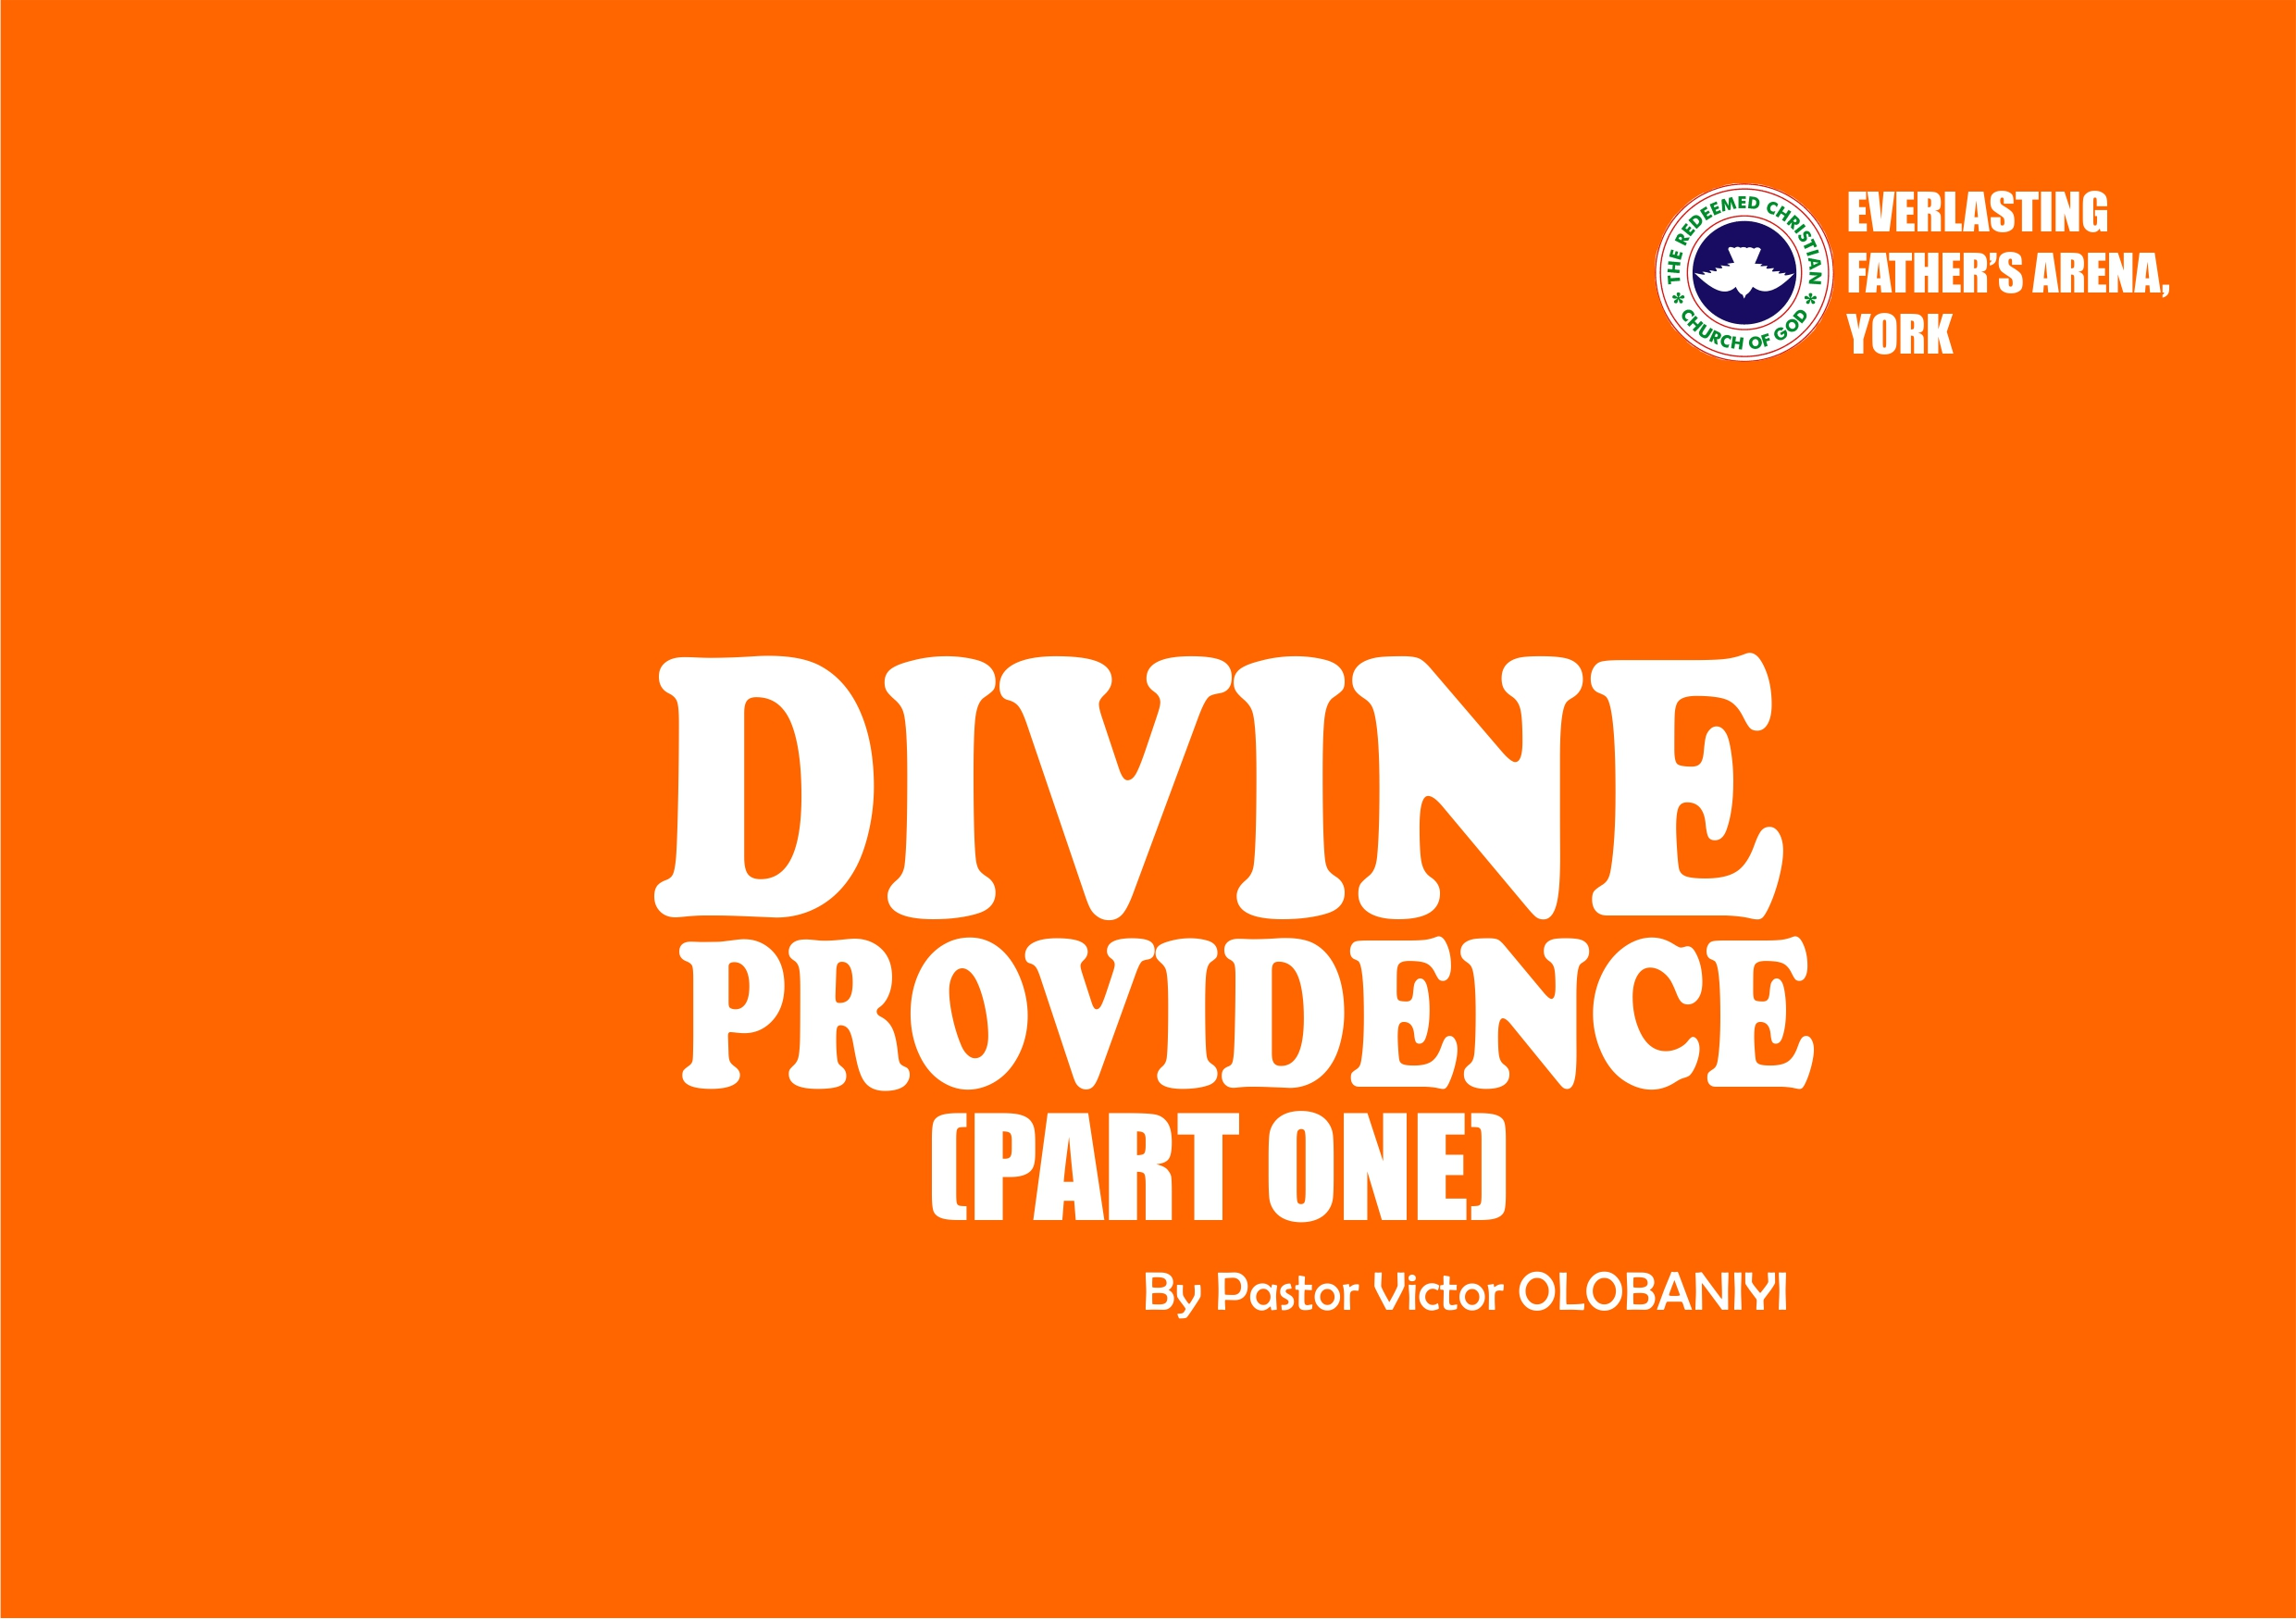 Divine Providence (Part One), by Pastor Victor Olobaniyi